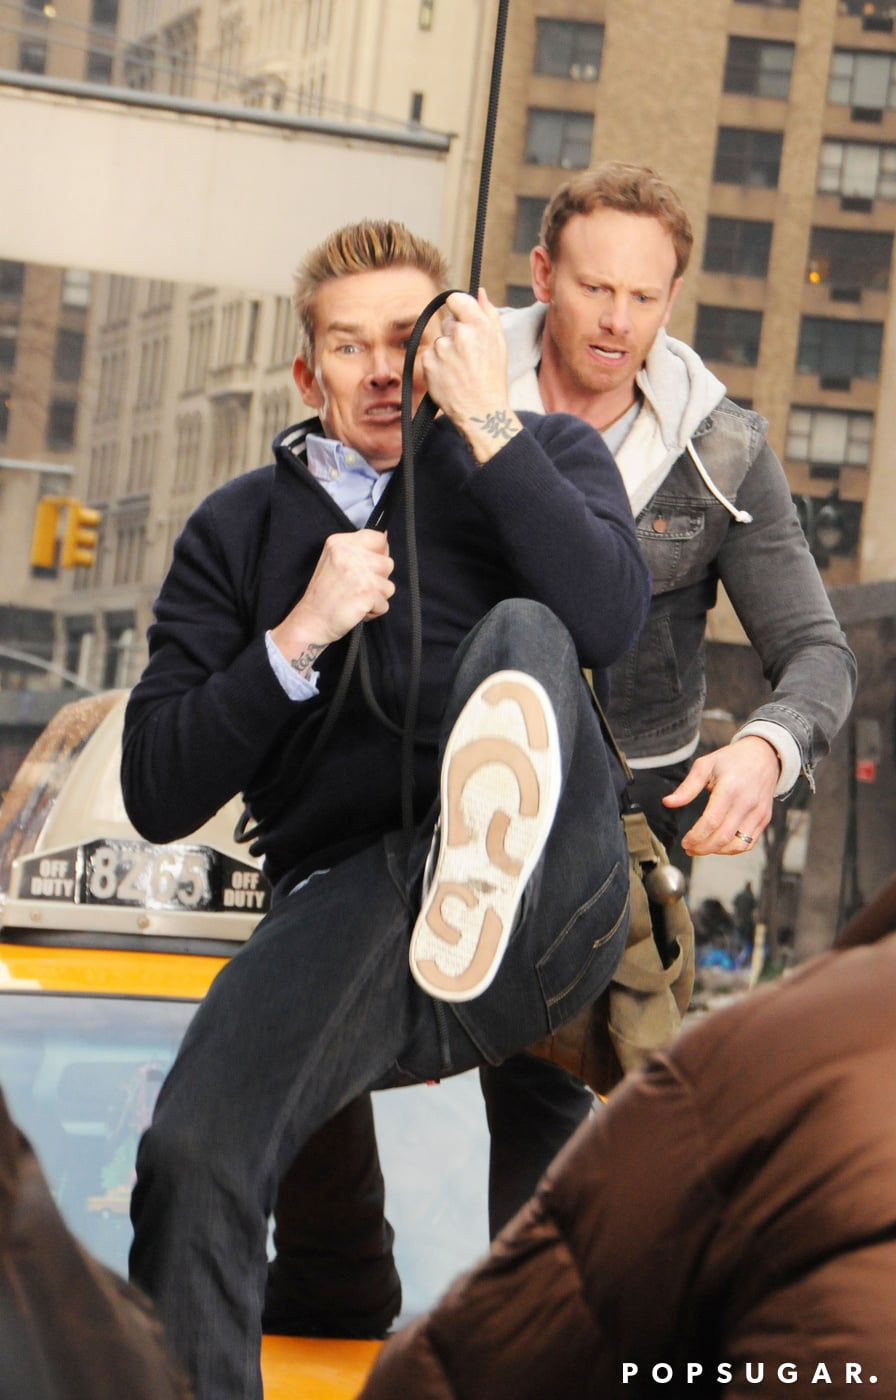 McGrath and Ziering kicked things up a notch.